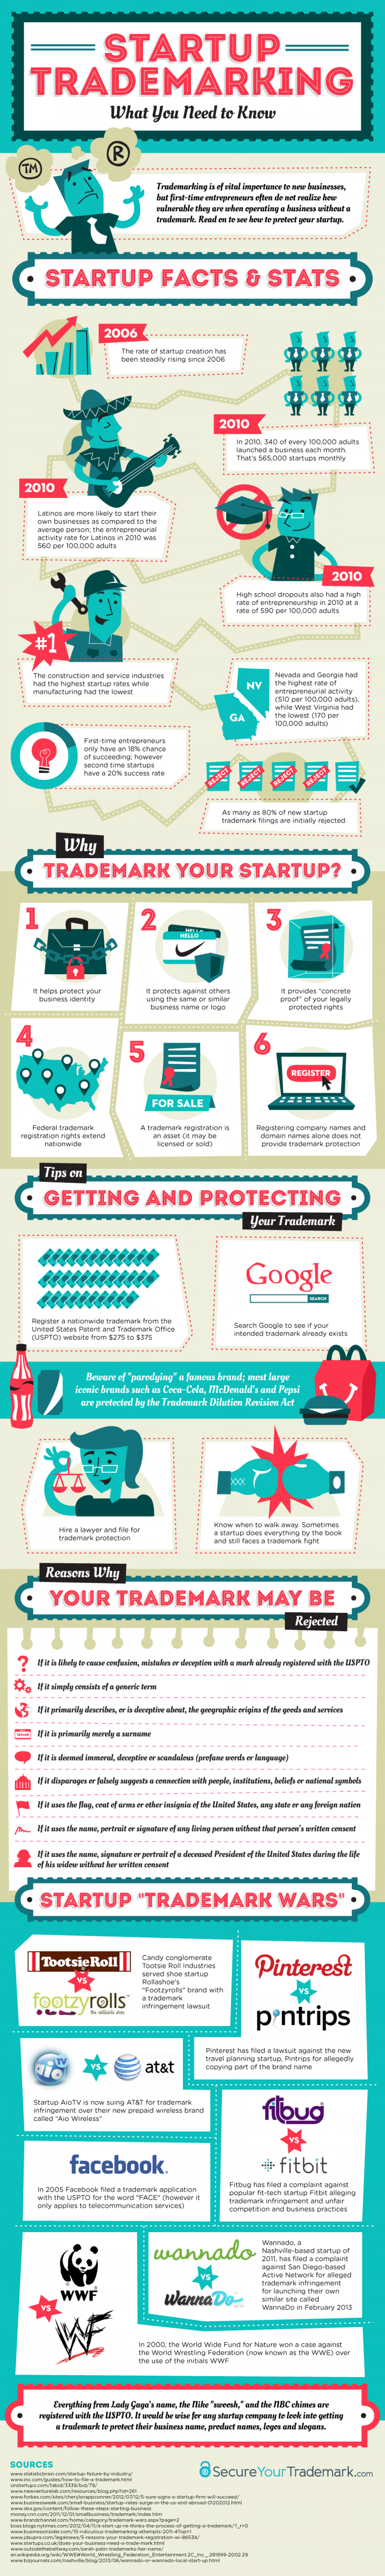 Startup Trademarking Infographic